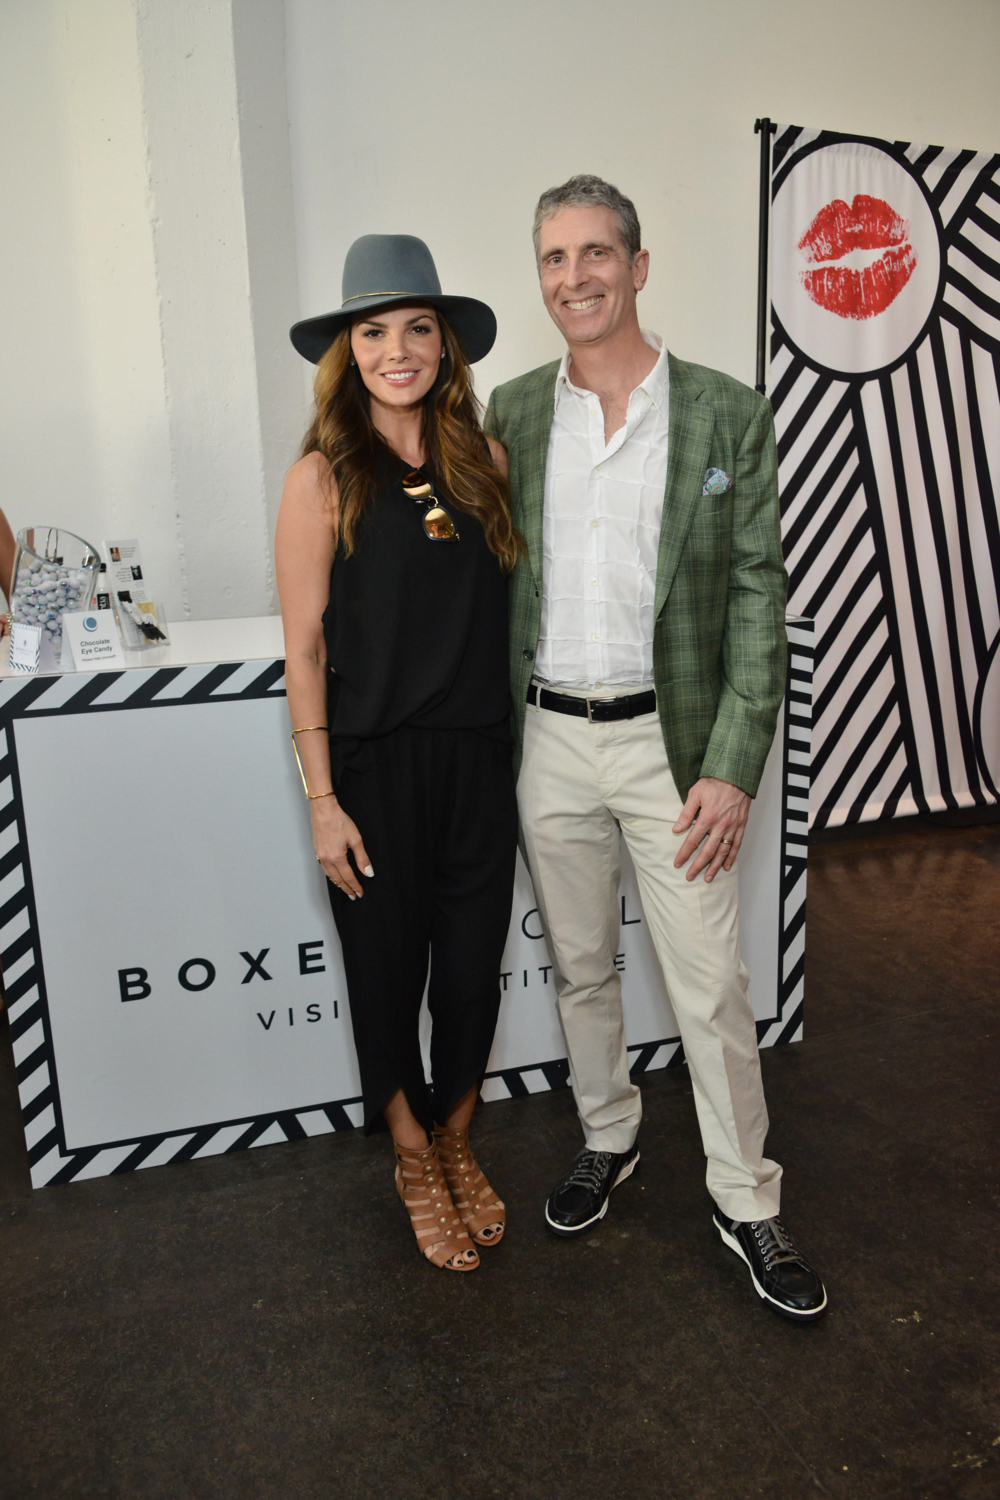 Actress and model Ali Landry with Dr. Brian Boxer Wachler. Courtesy Photo